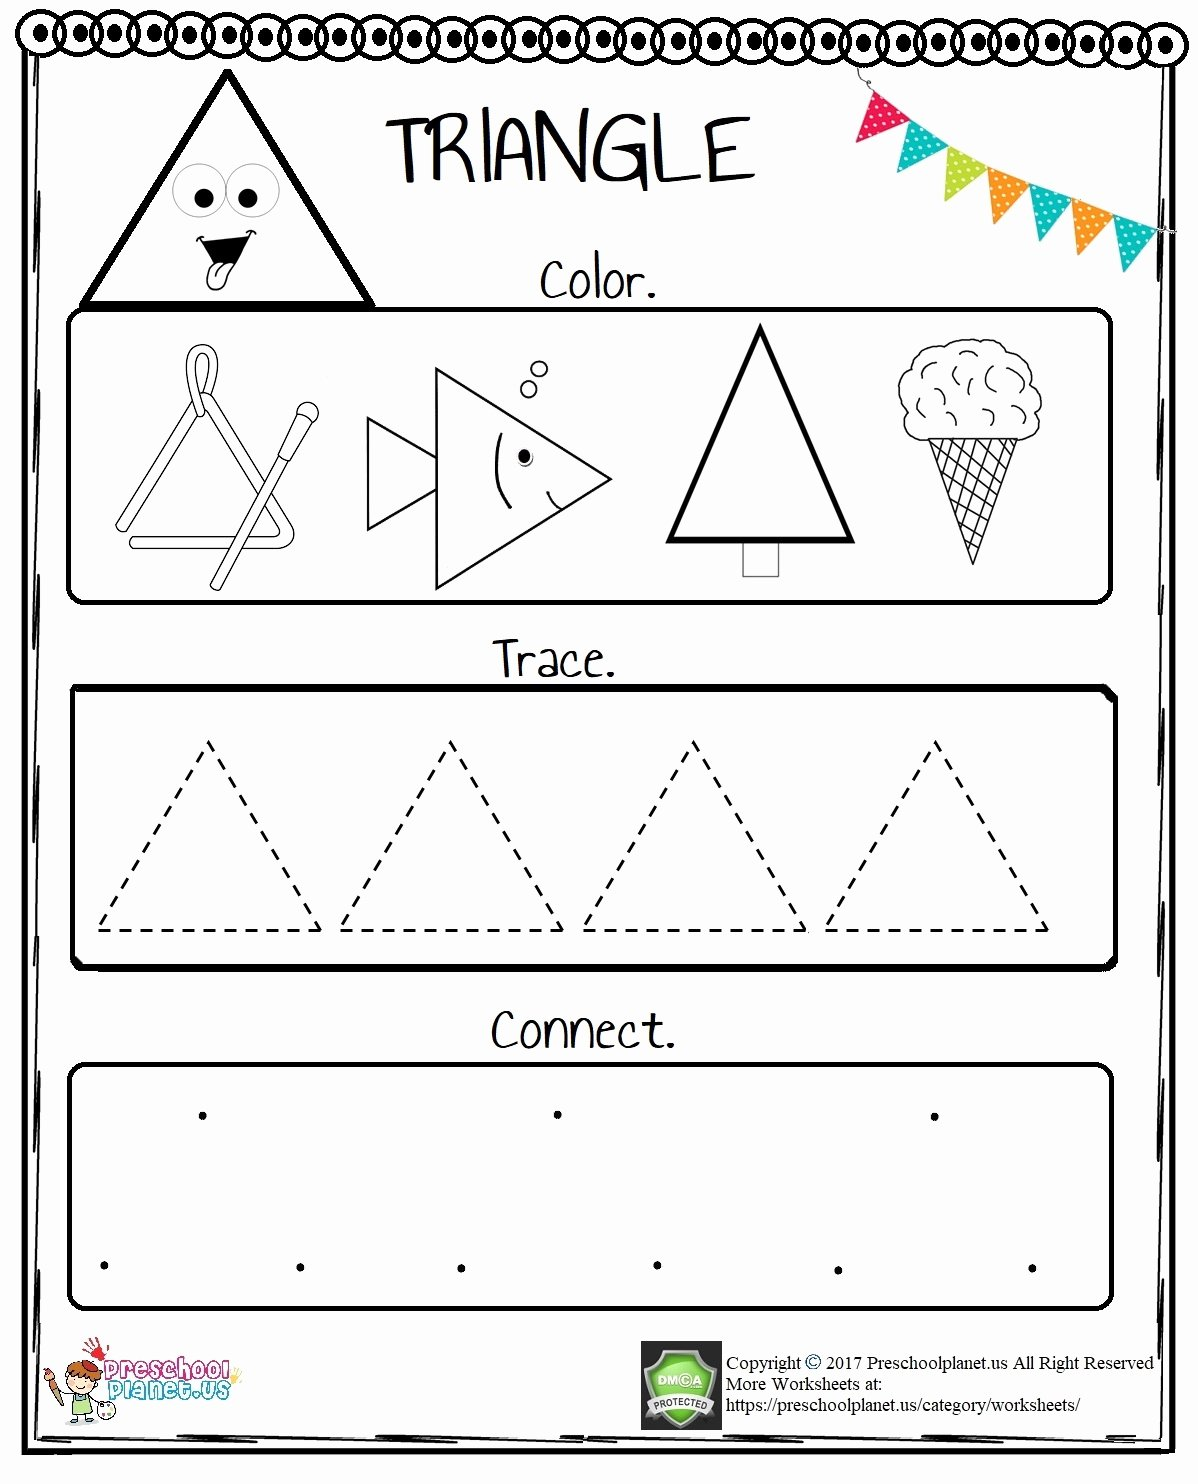 Triangle Printable Worksheets for Preschoolers top Triangle Worksheet for Preschool – Preschoolplanet